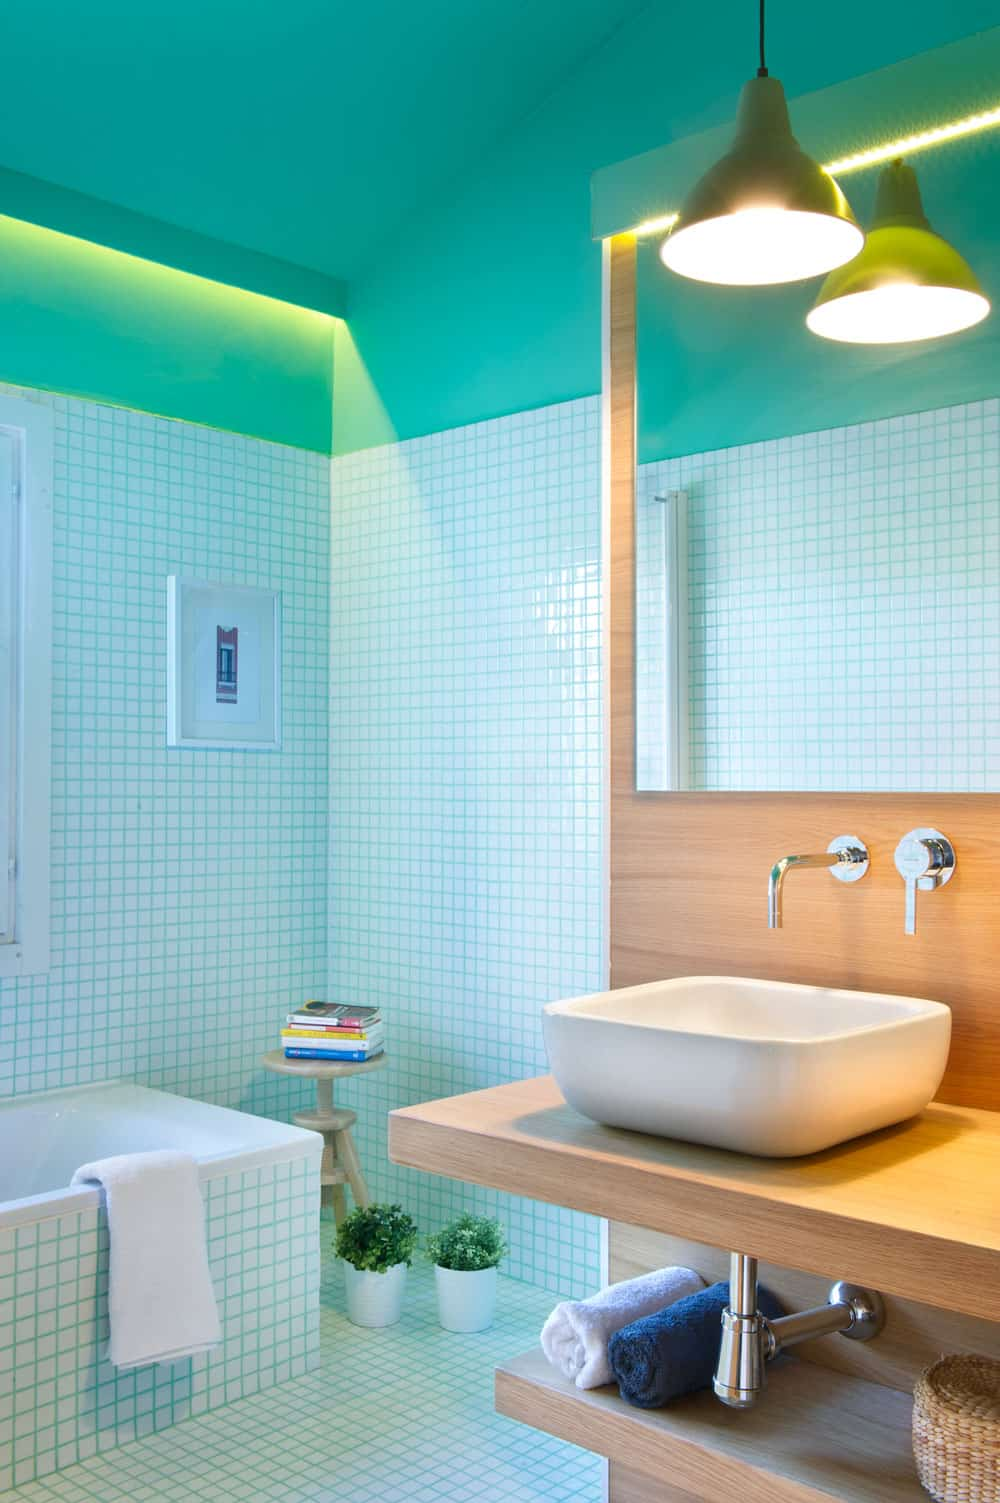 This room has a lovely shade of green above the tiled walls and flooring that is outlined with grout of the same hue as the wall.